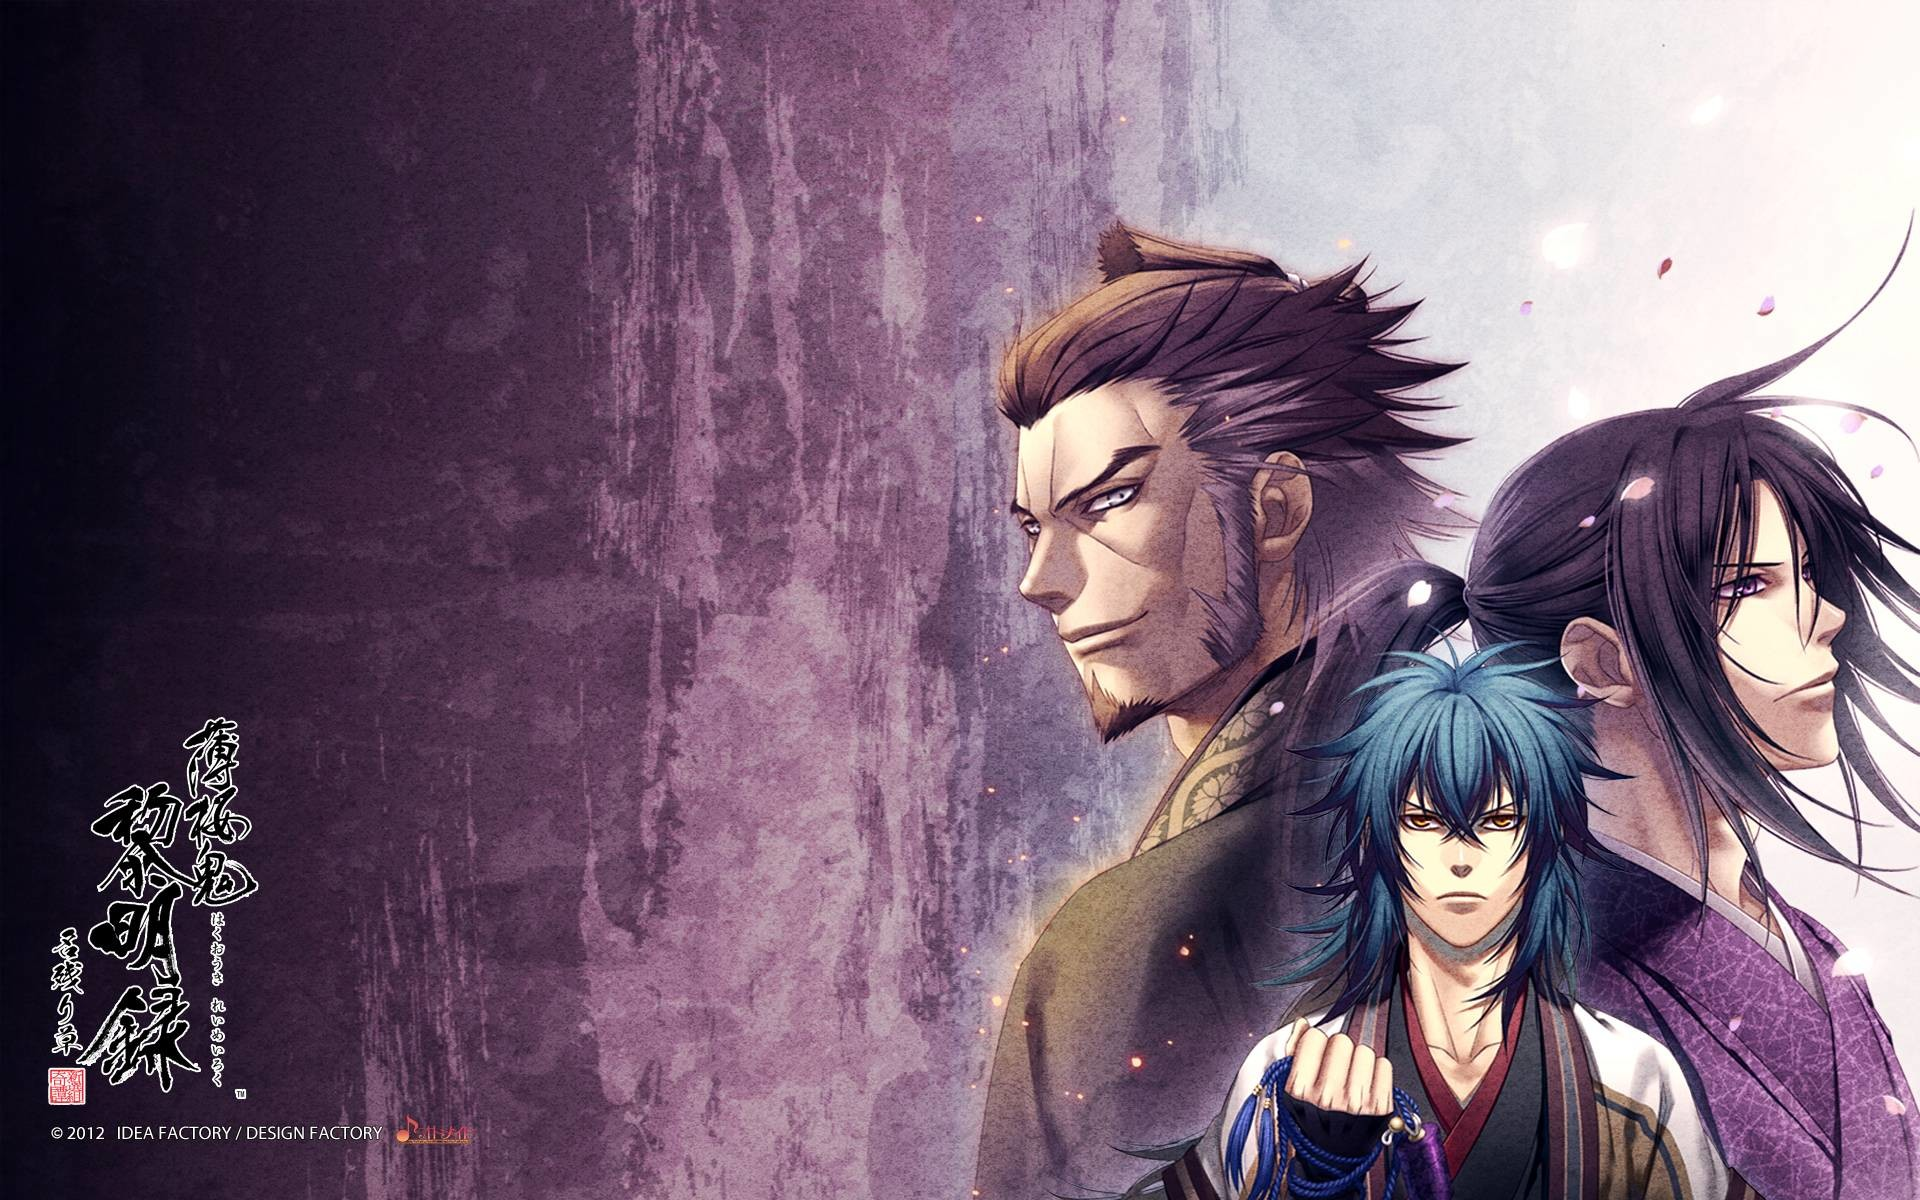 Res: 1920x1200, Hakuouki Shinsengumi Kitan Wallpapers 16 - 1920 X 1200